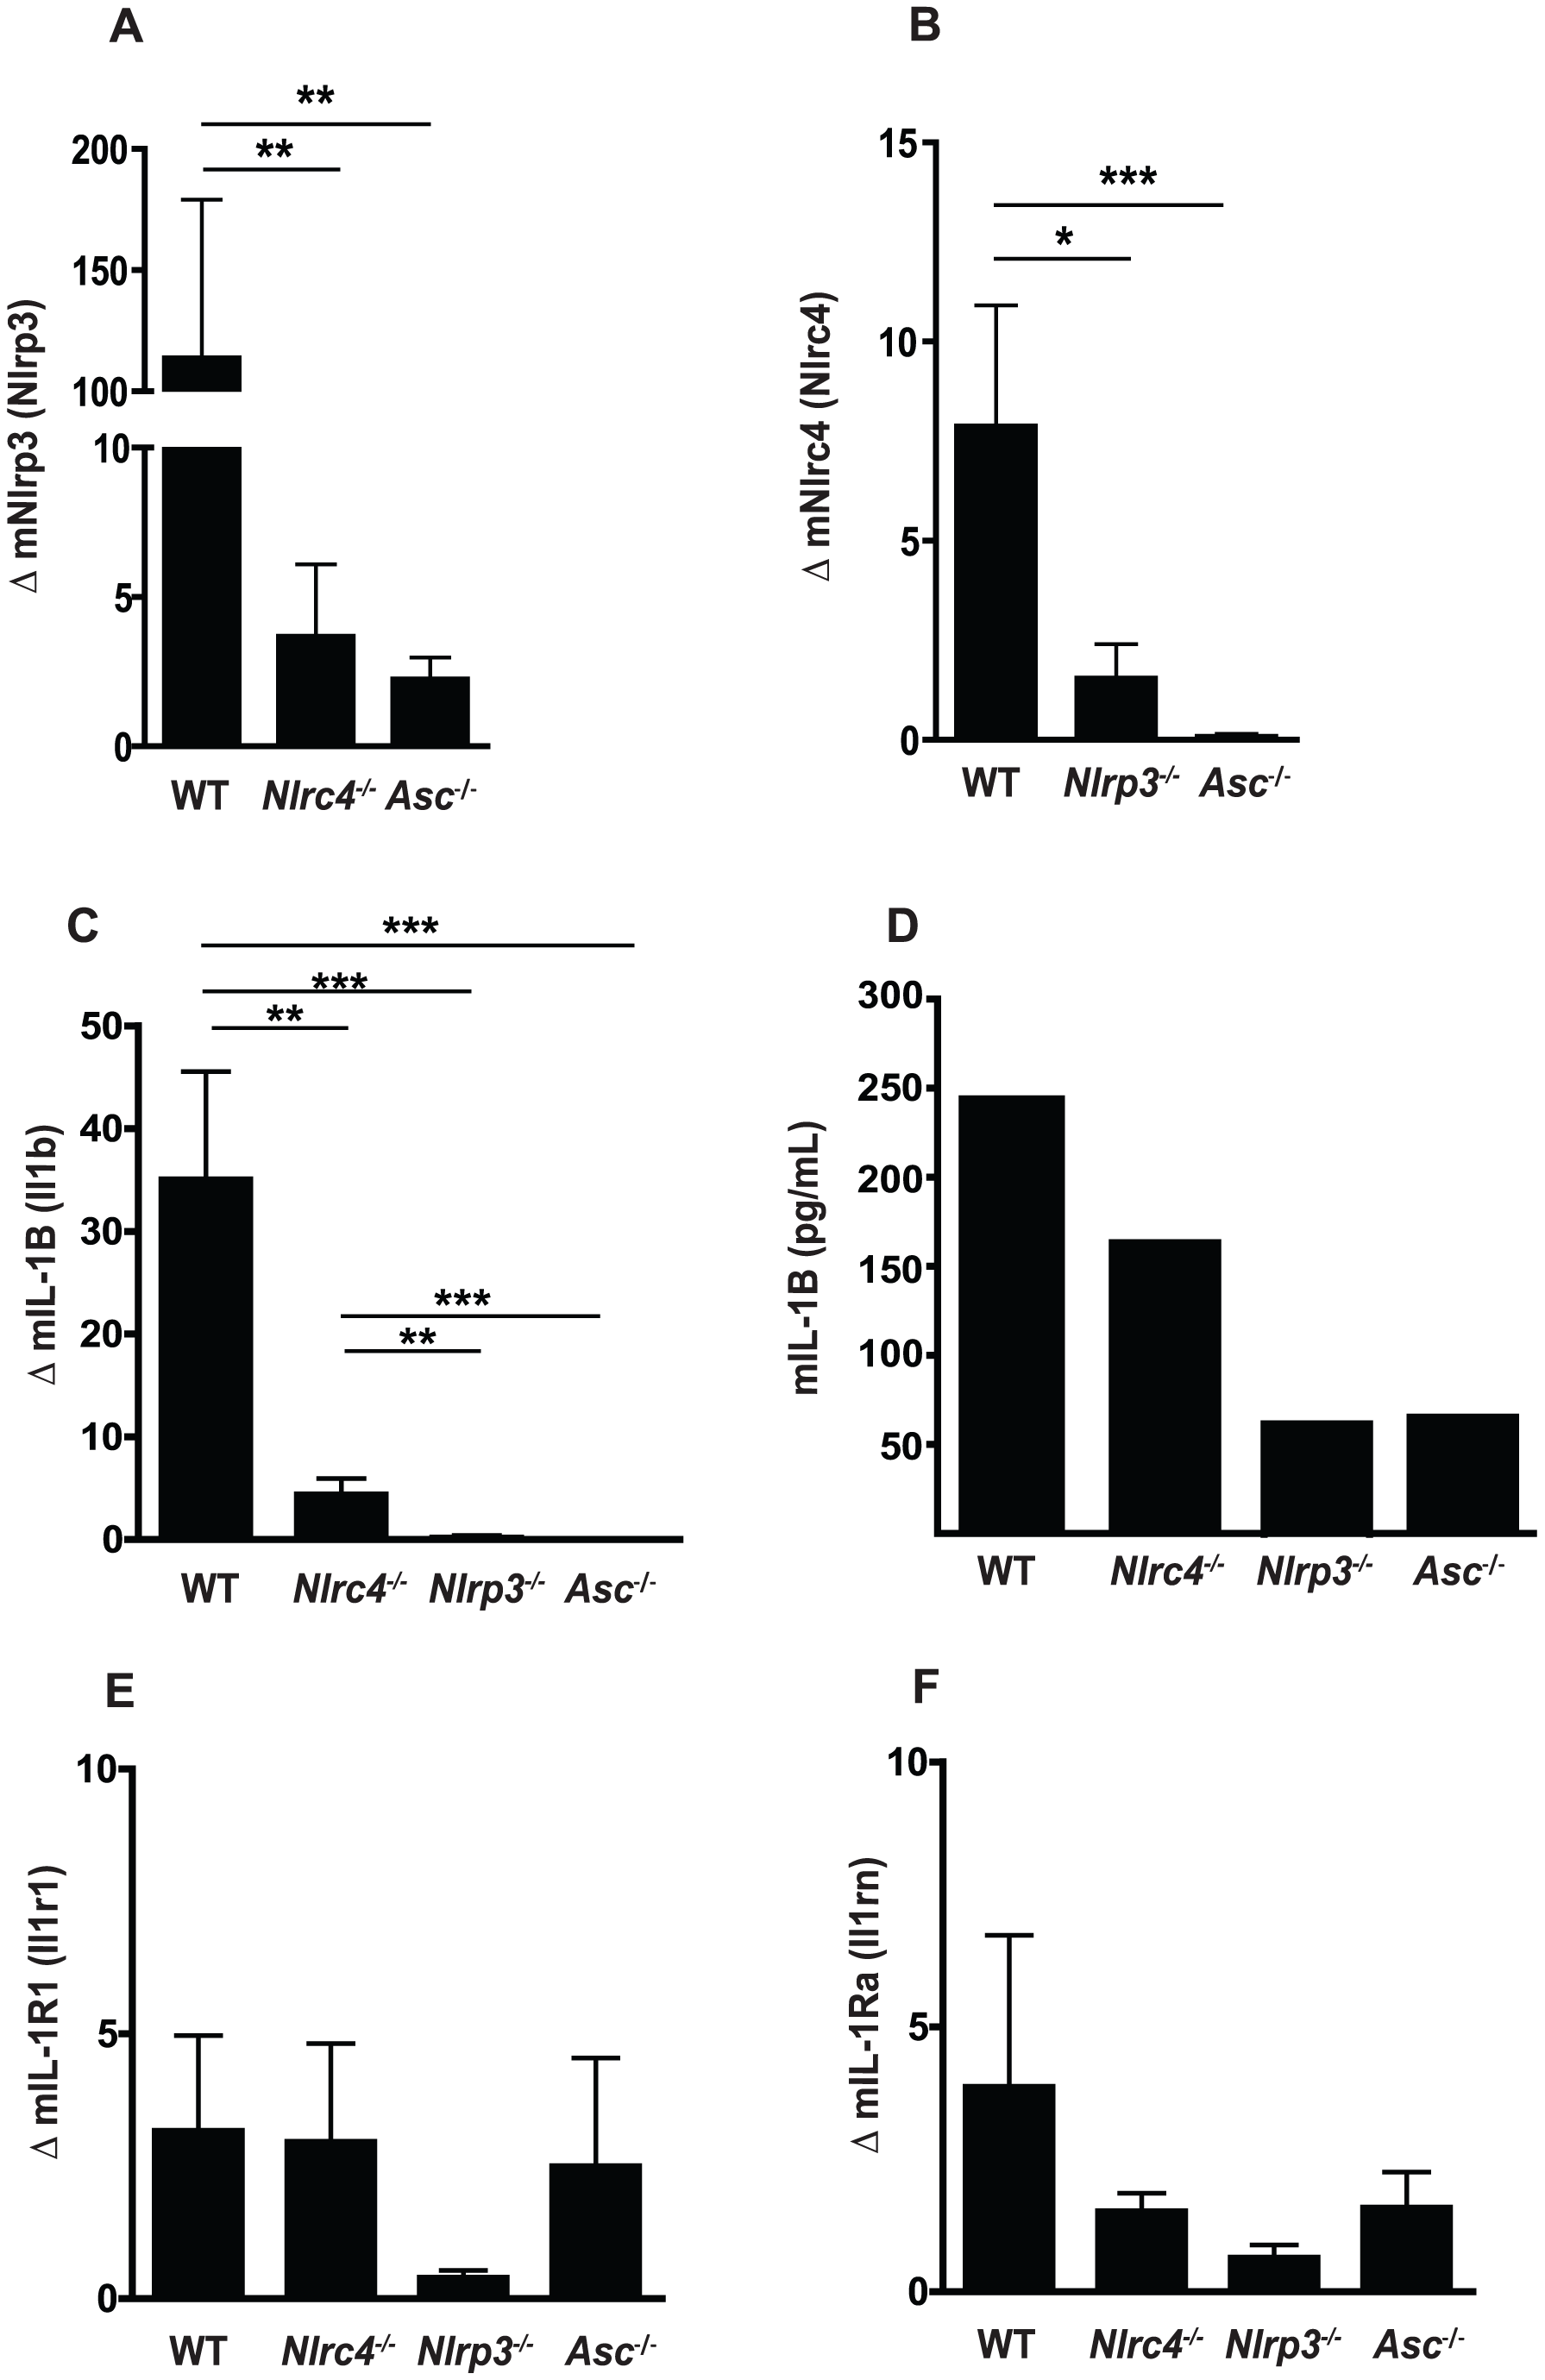 Regulation of <i>Nlrp3</i> and <i>Nlrc4</i> expression in mucosal candidiasis.